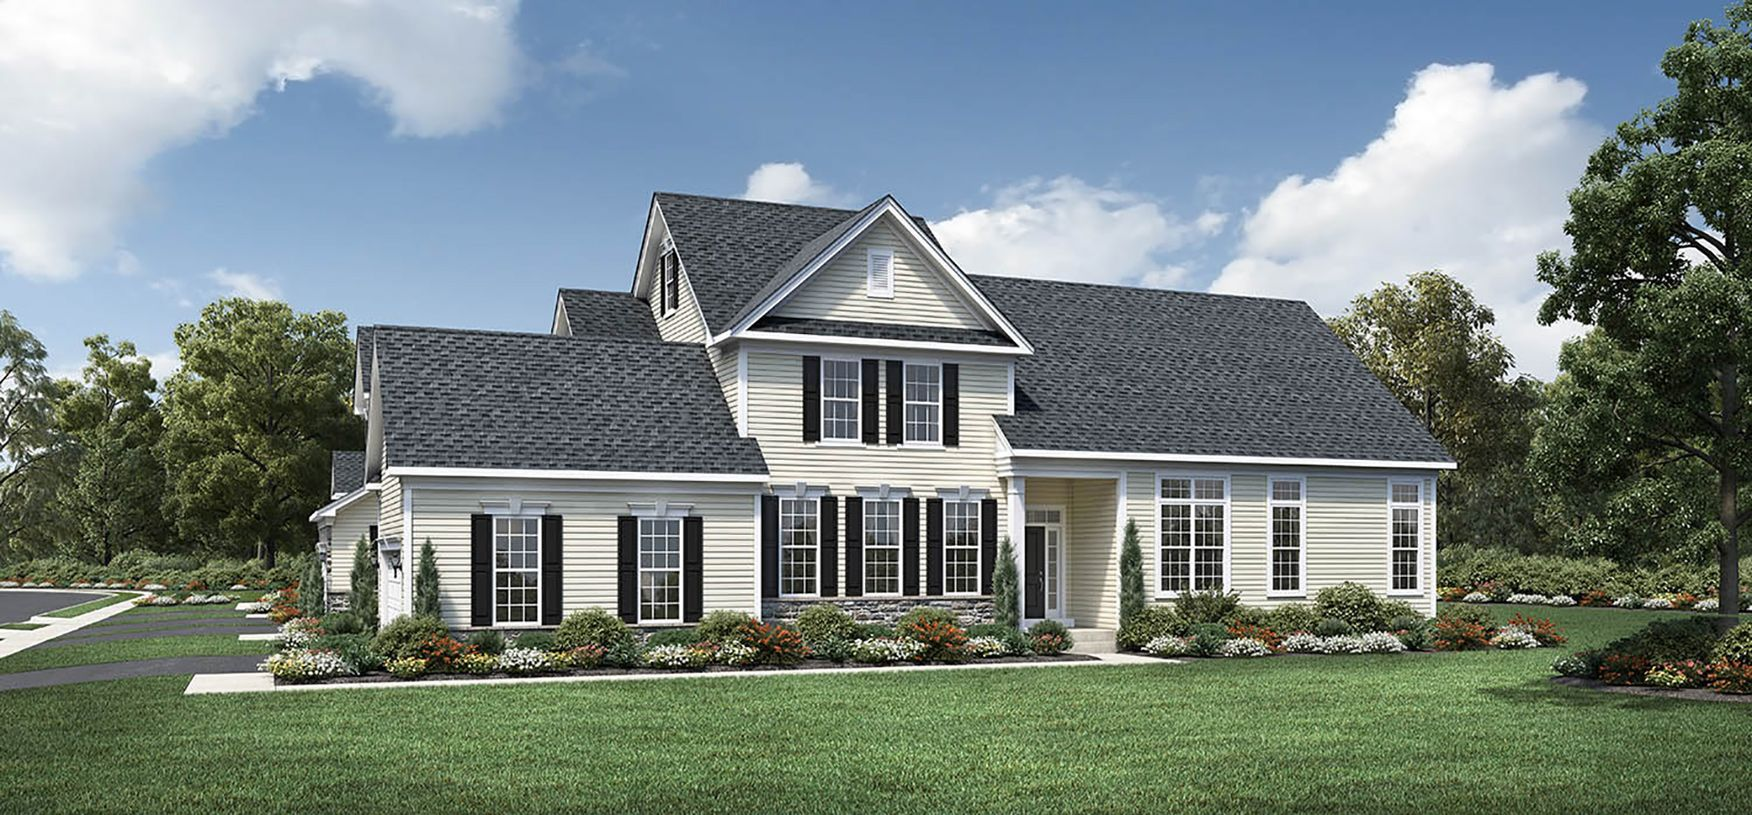 Elevation Image:Country Manor